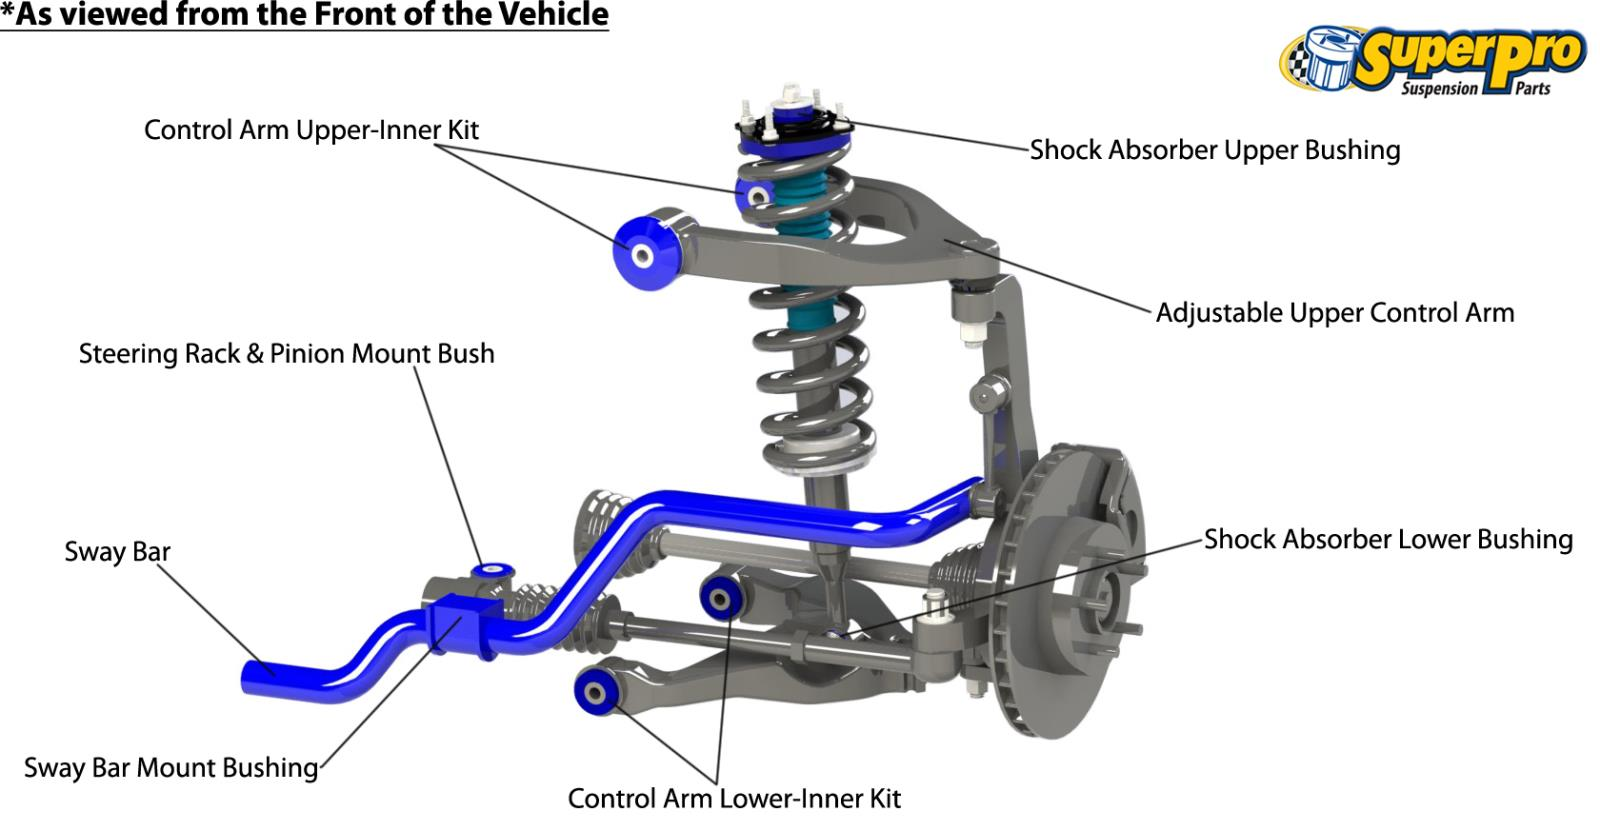 Front suspension diagram for HOLDEN COLORADO 2012-on - RG 4WD & 2WD Hi-Rider